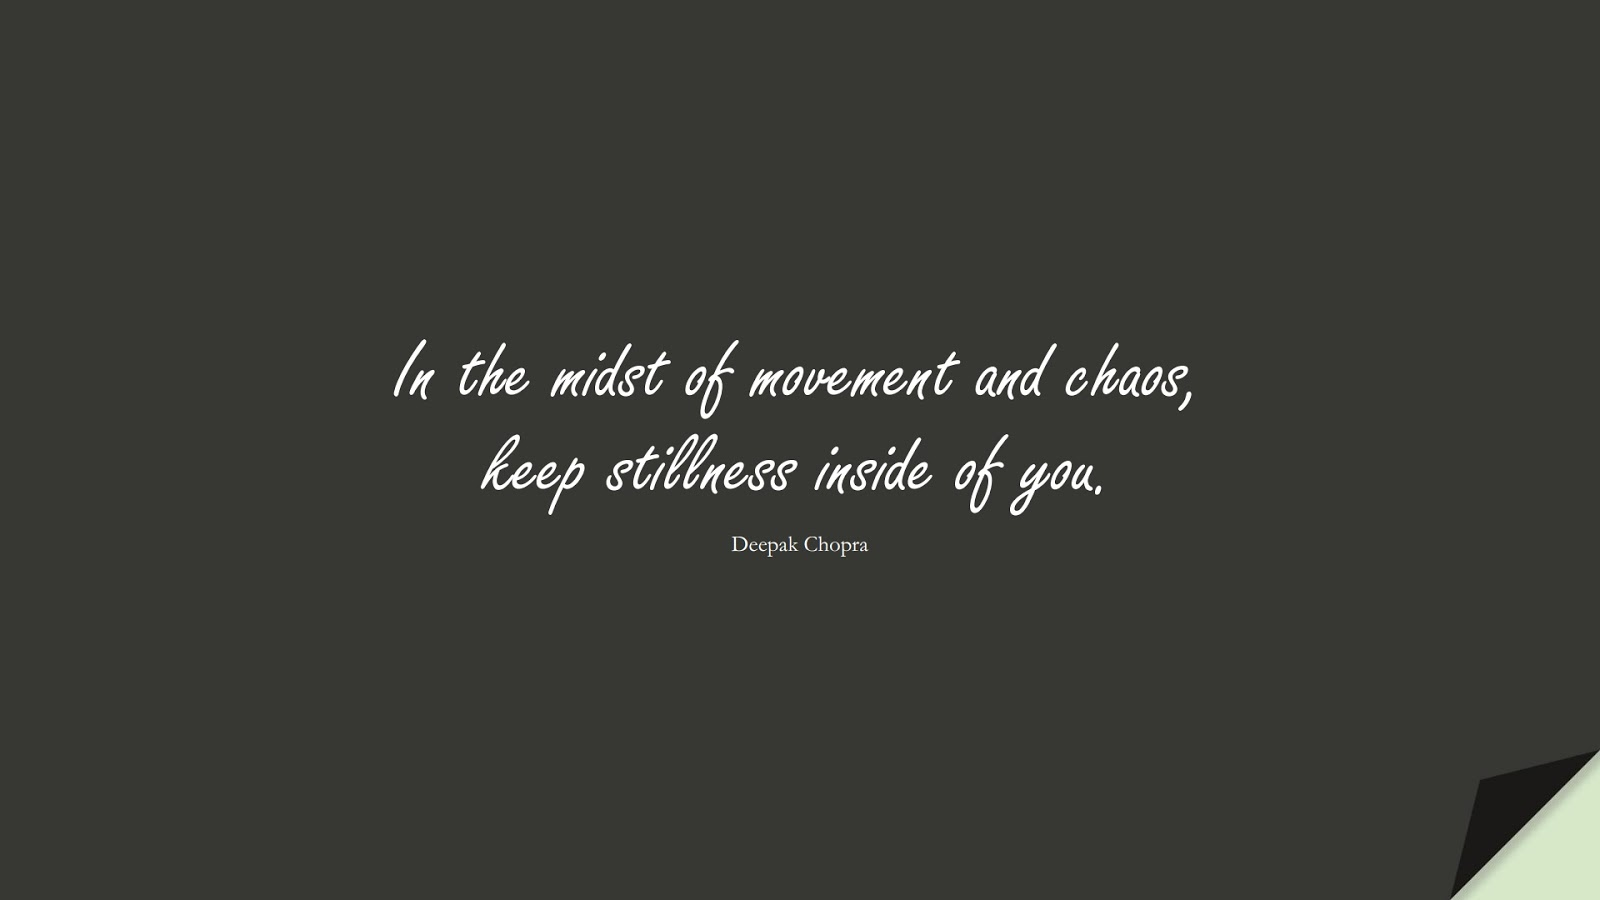 In the midst of movement and chaos, keep stillness inside of you. (Deepak Chopra);  #HappinessQuotes